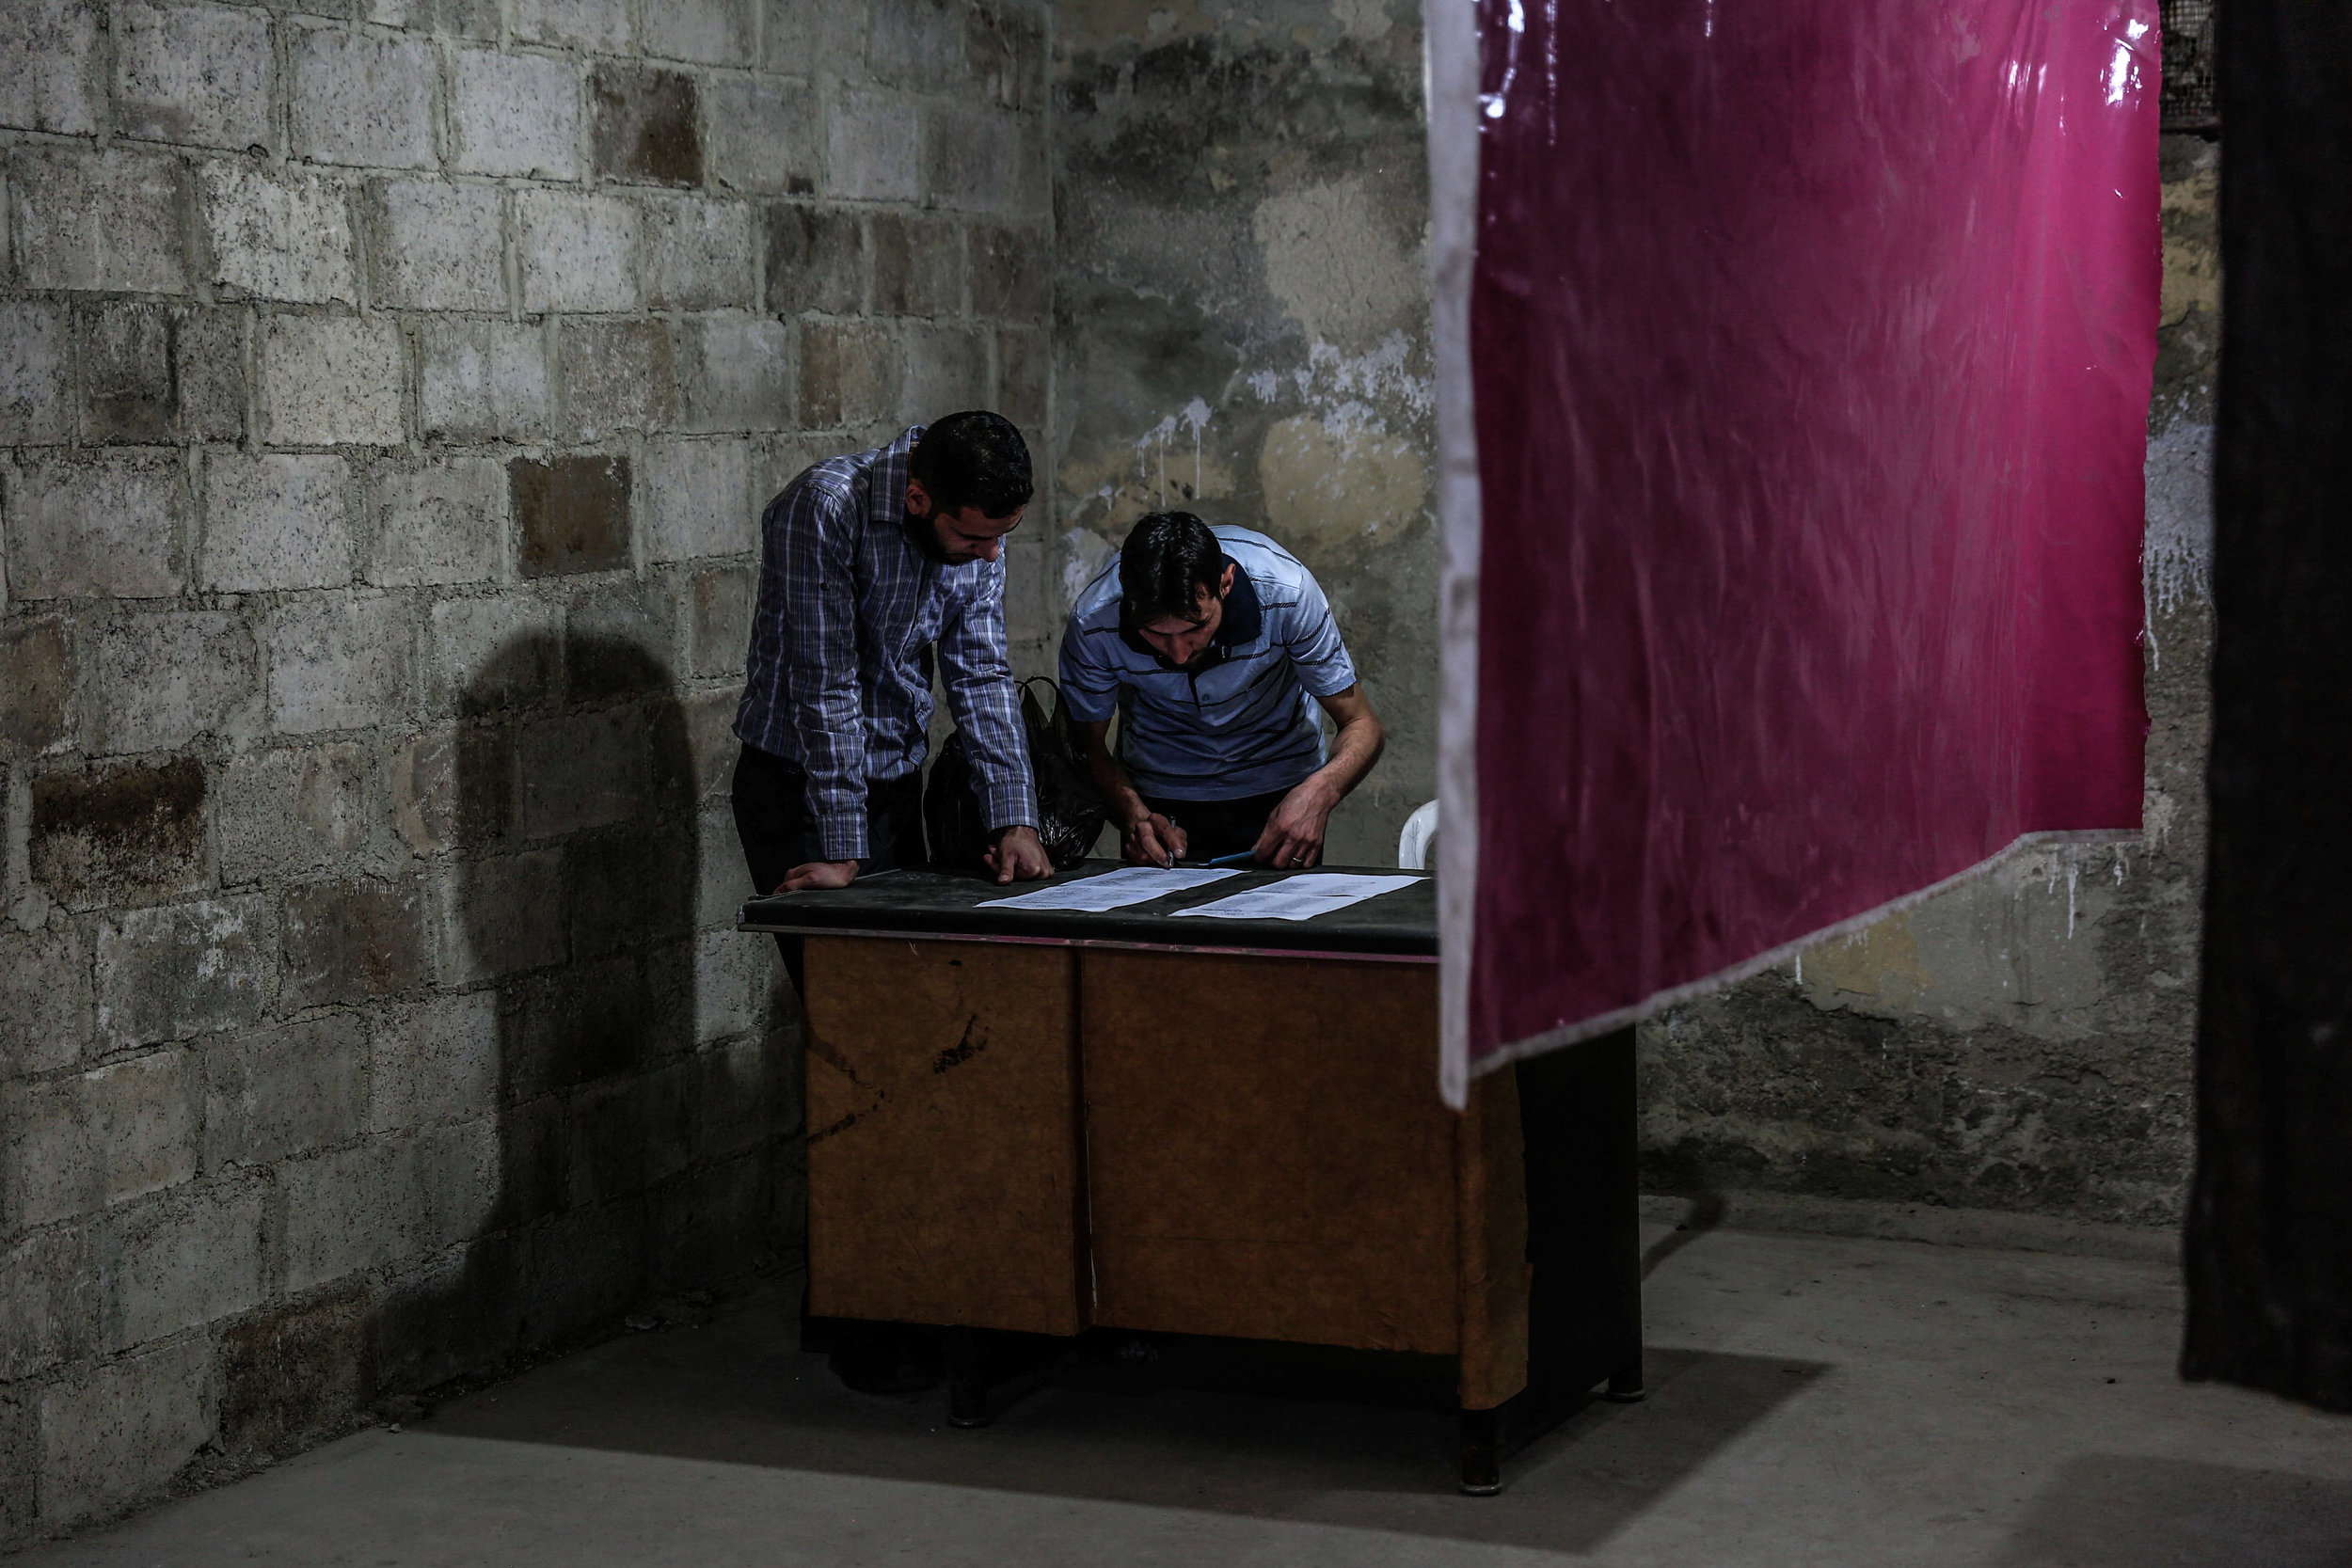 - People cast their votes in an underground basement during the election of the local council in the city of Douma in Eastern Ghouta.